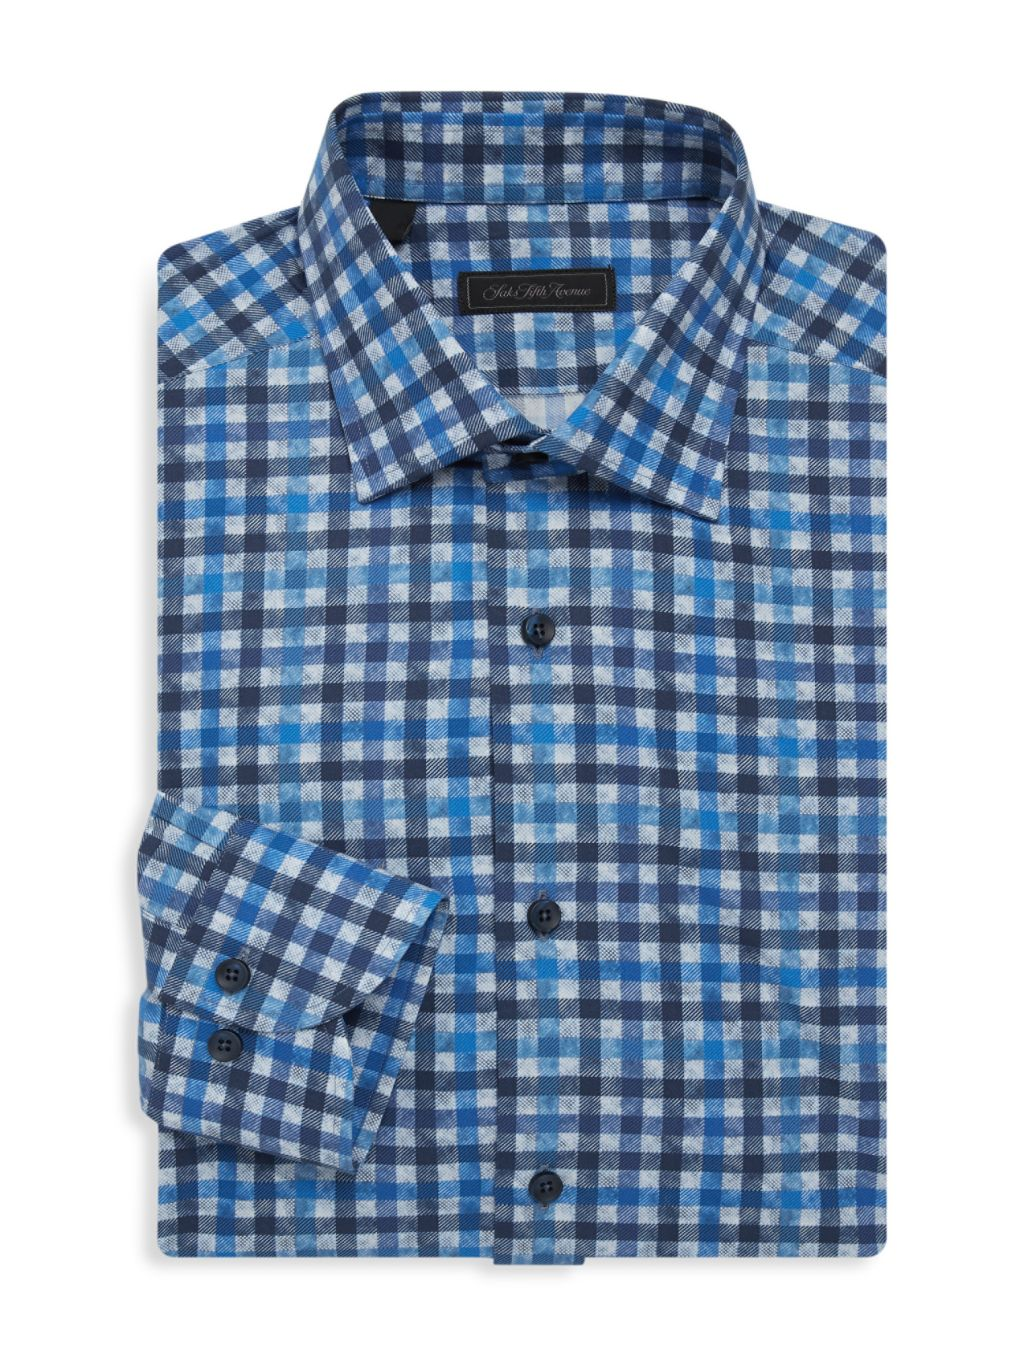 Saks Fifth Avenue COLLECTION Checked Dress Shirt